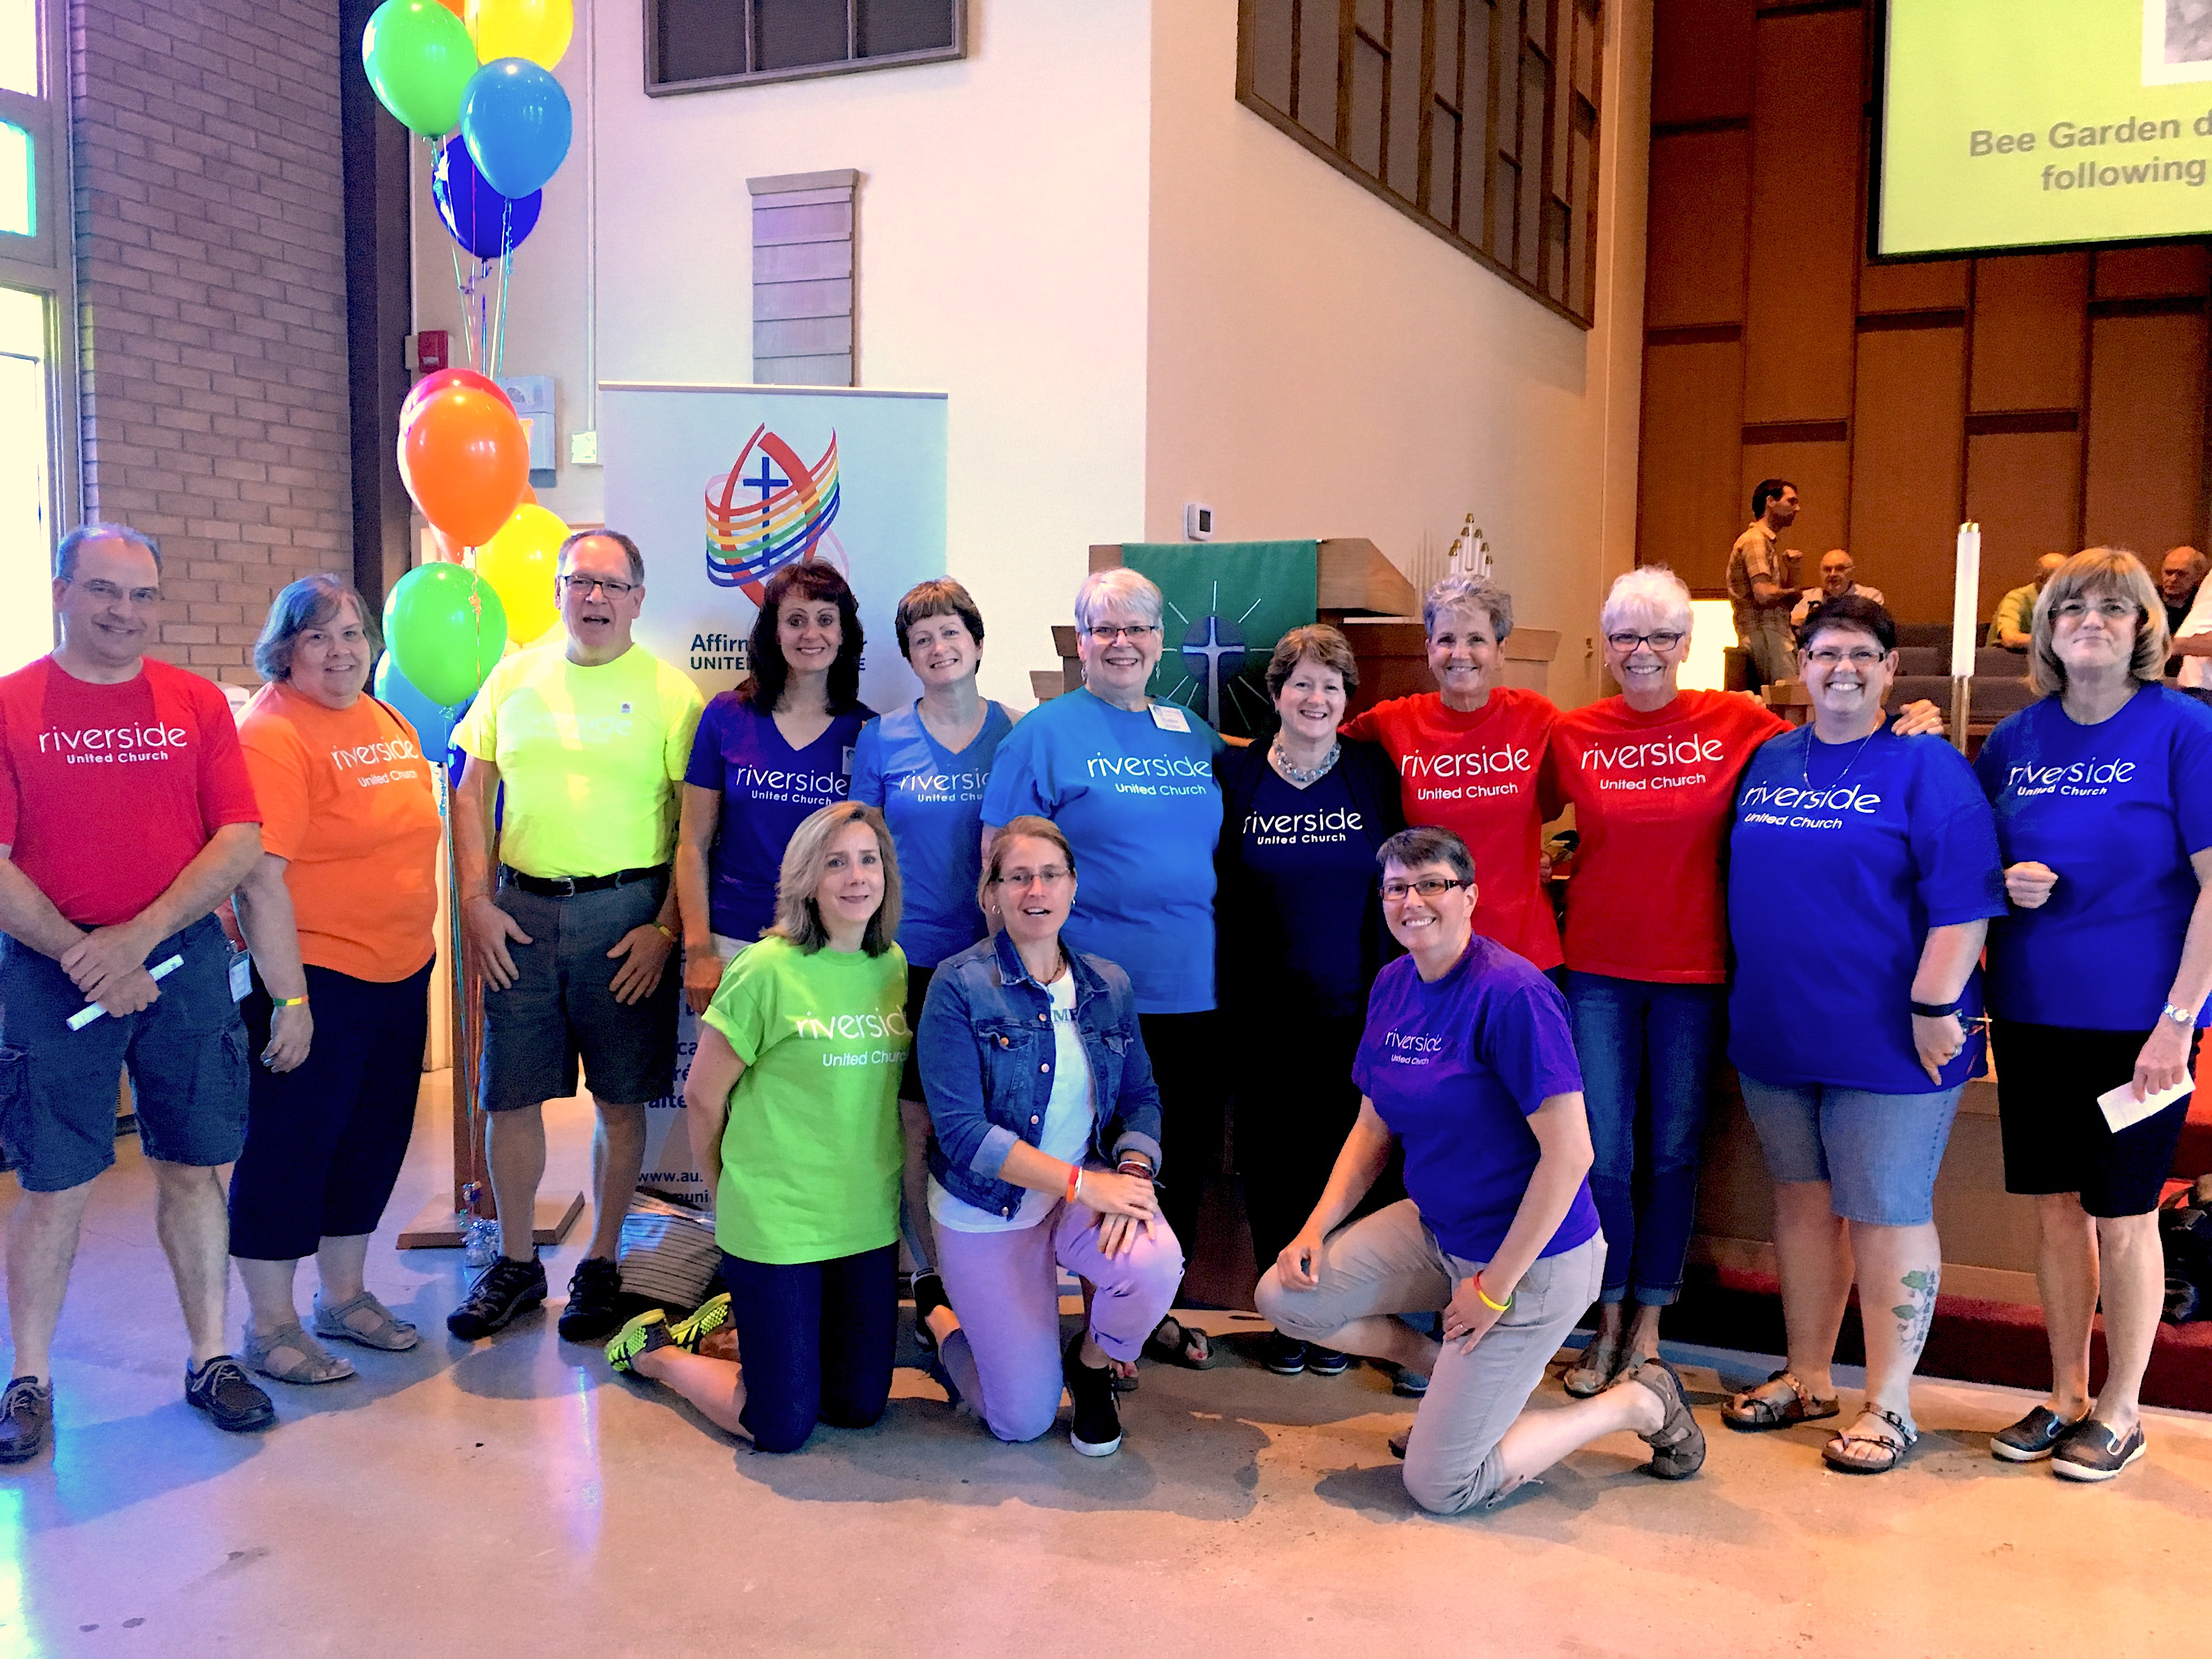 Riverside United Church in London ON celebrates becoming Affirming and rejoices in their funky t-shirts, June 2017.